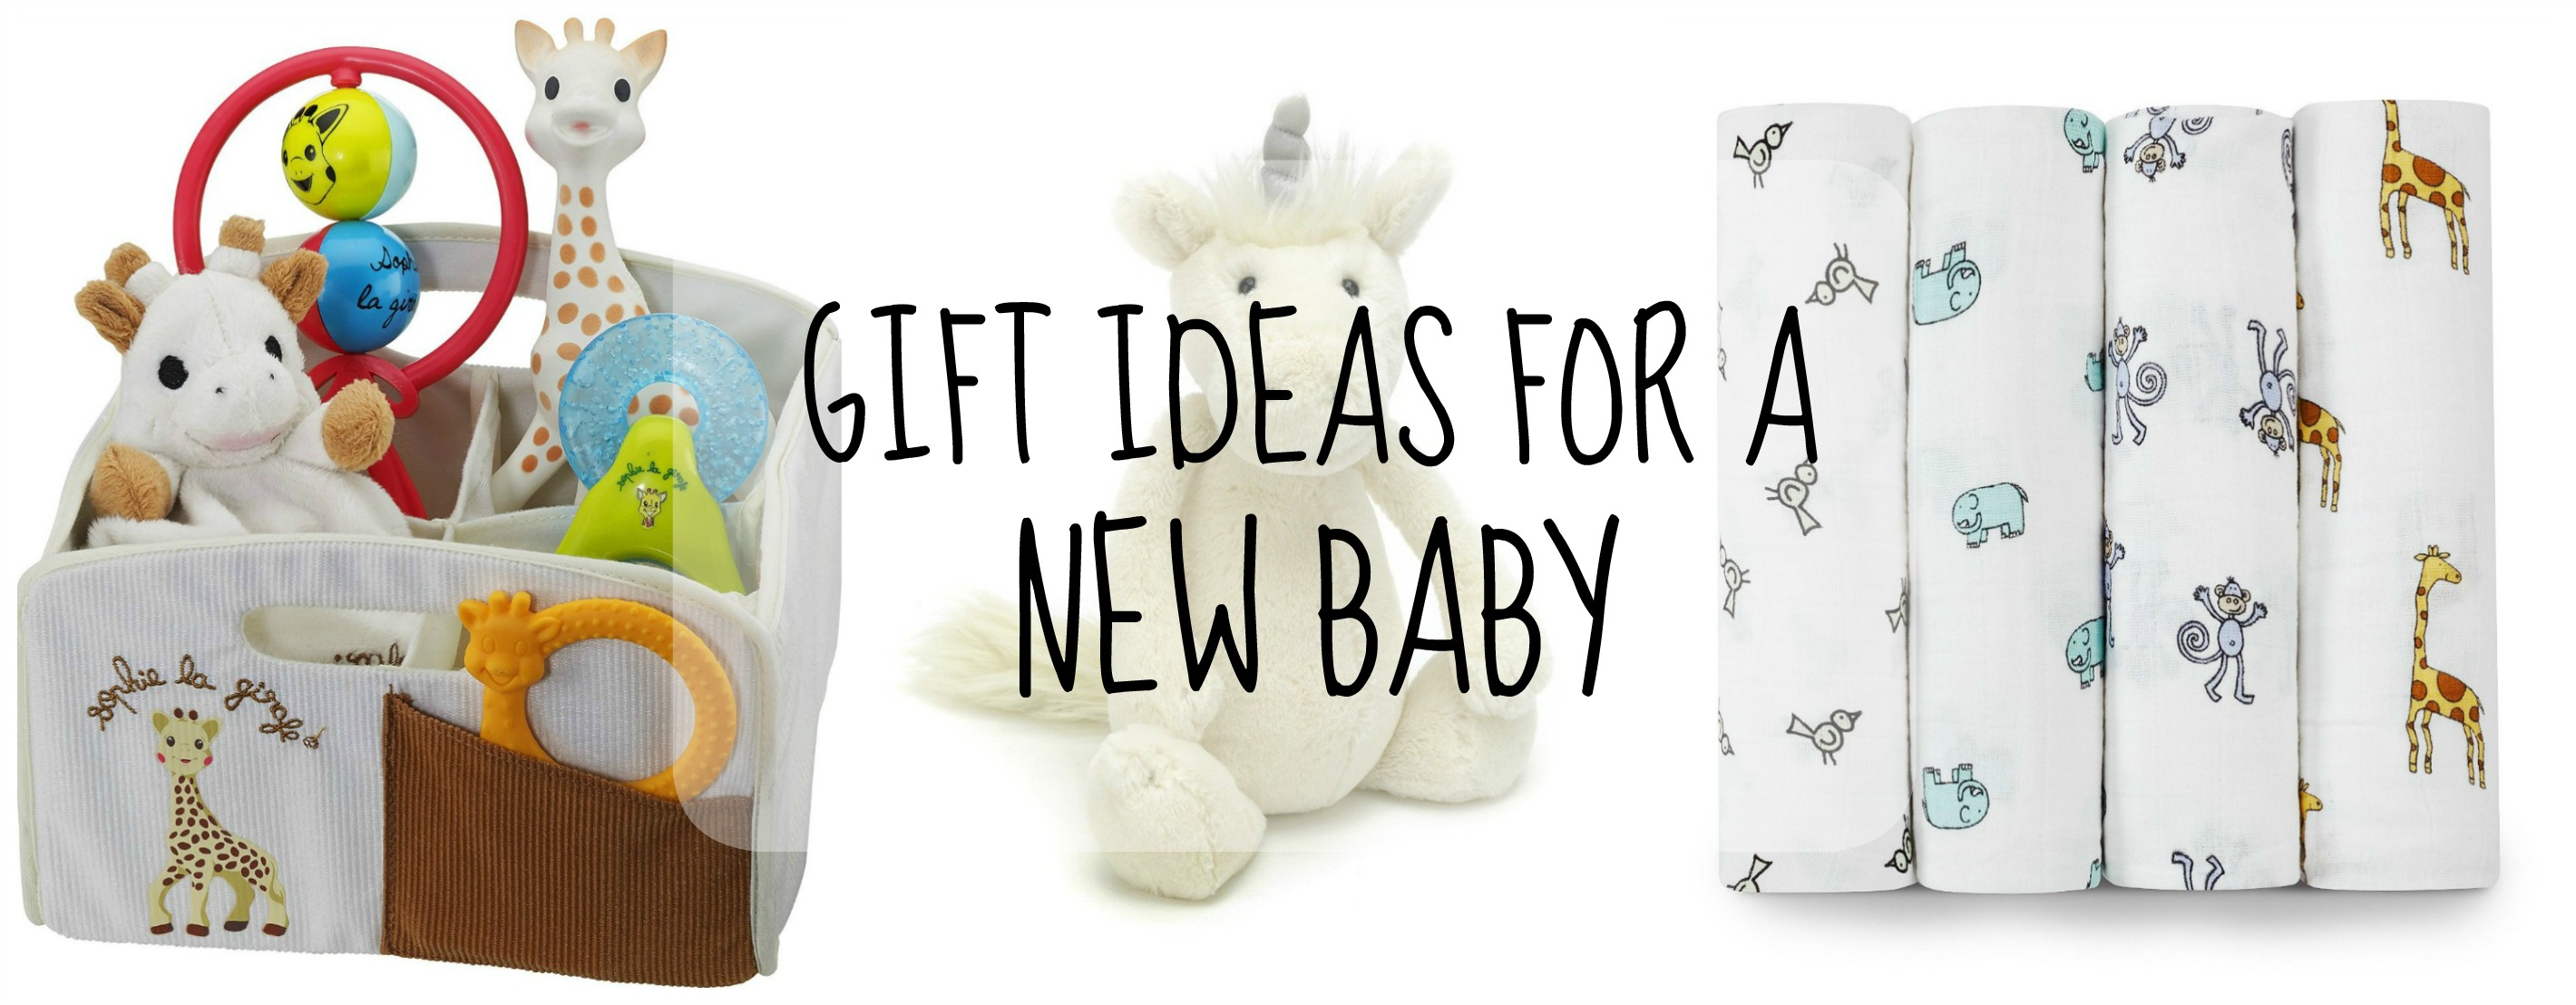 Baby Gift Ideas Uk : Gift ideas for a new baby lamb bear